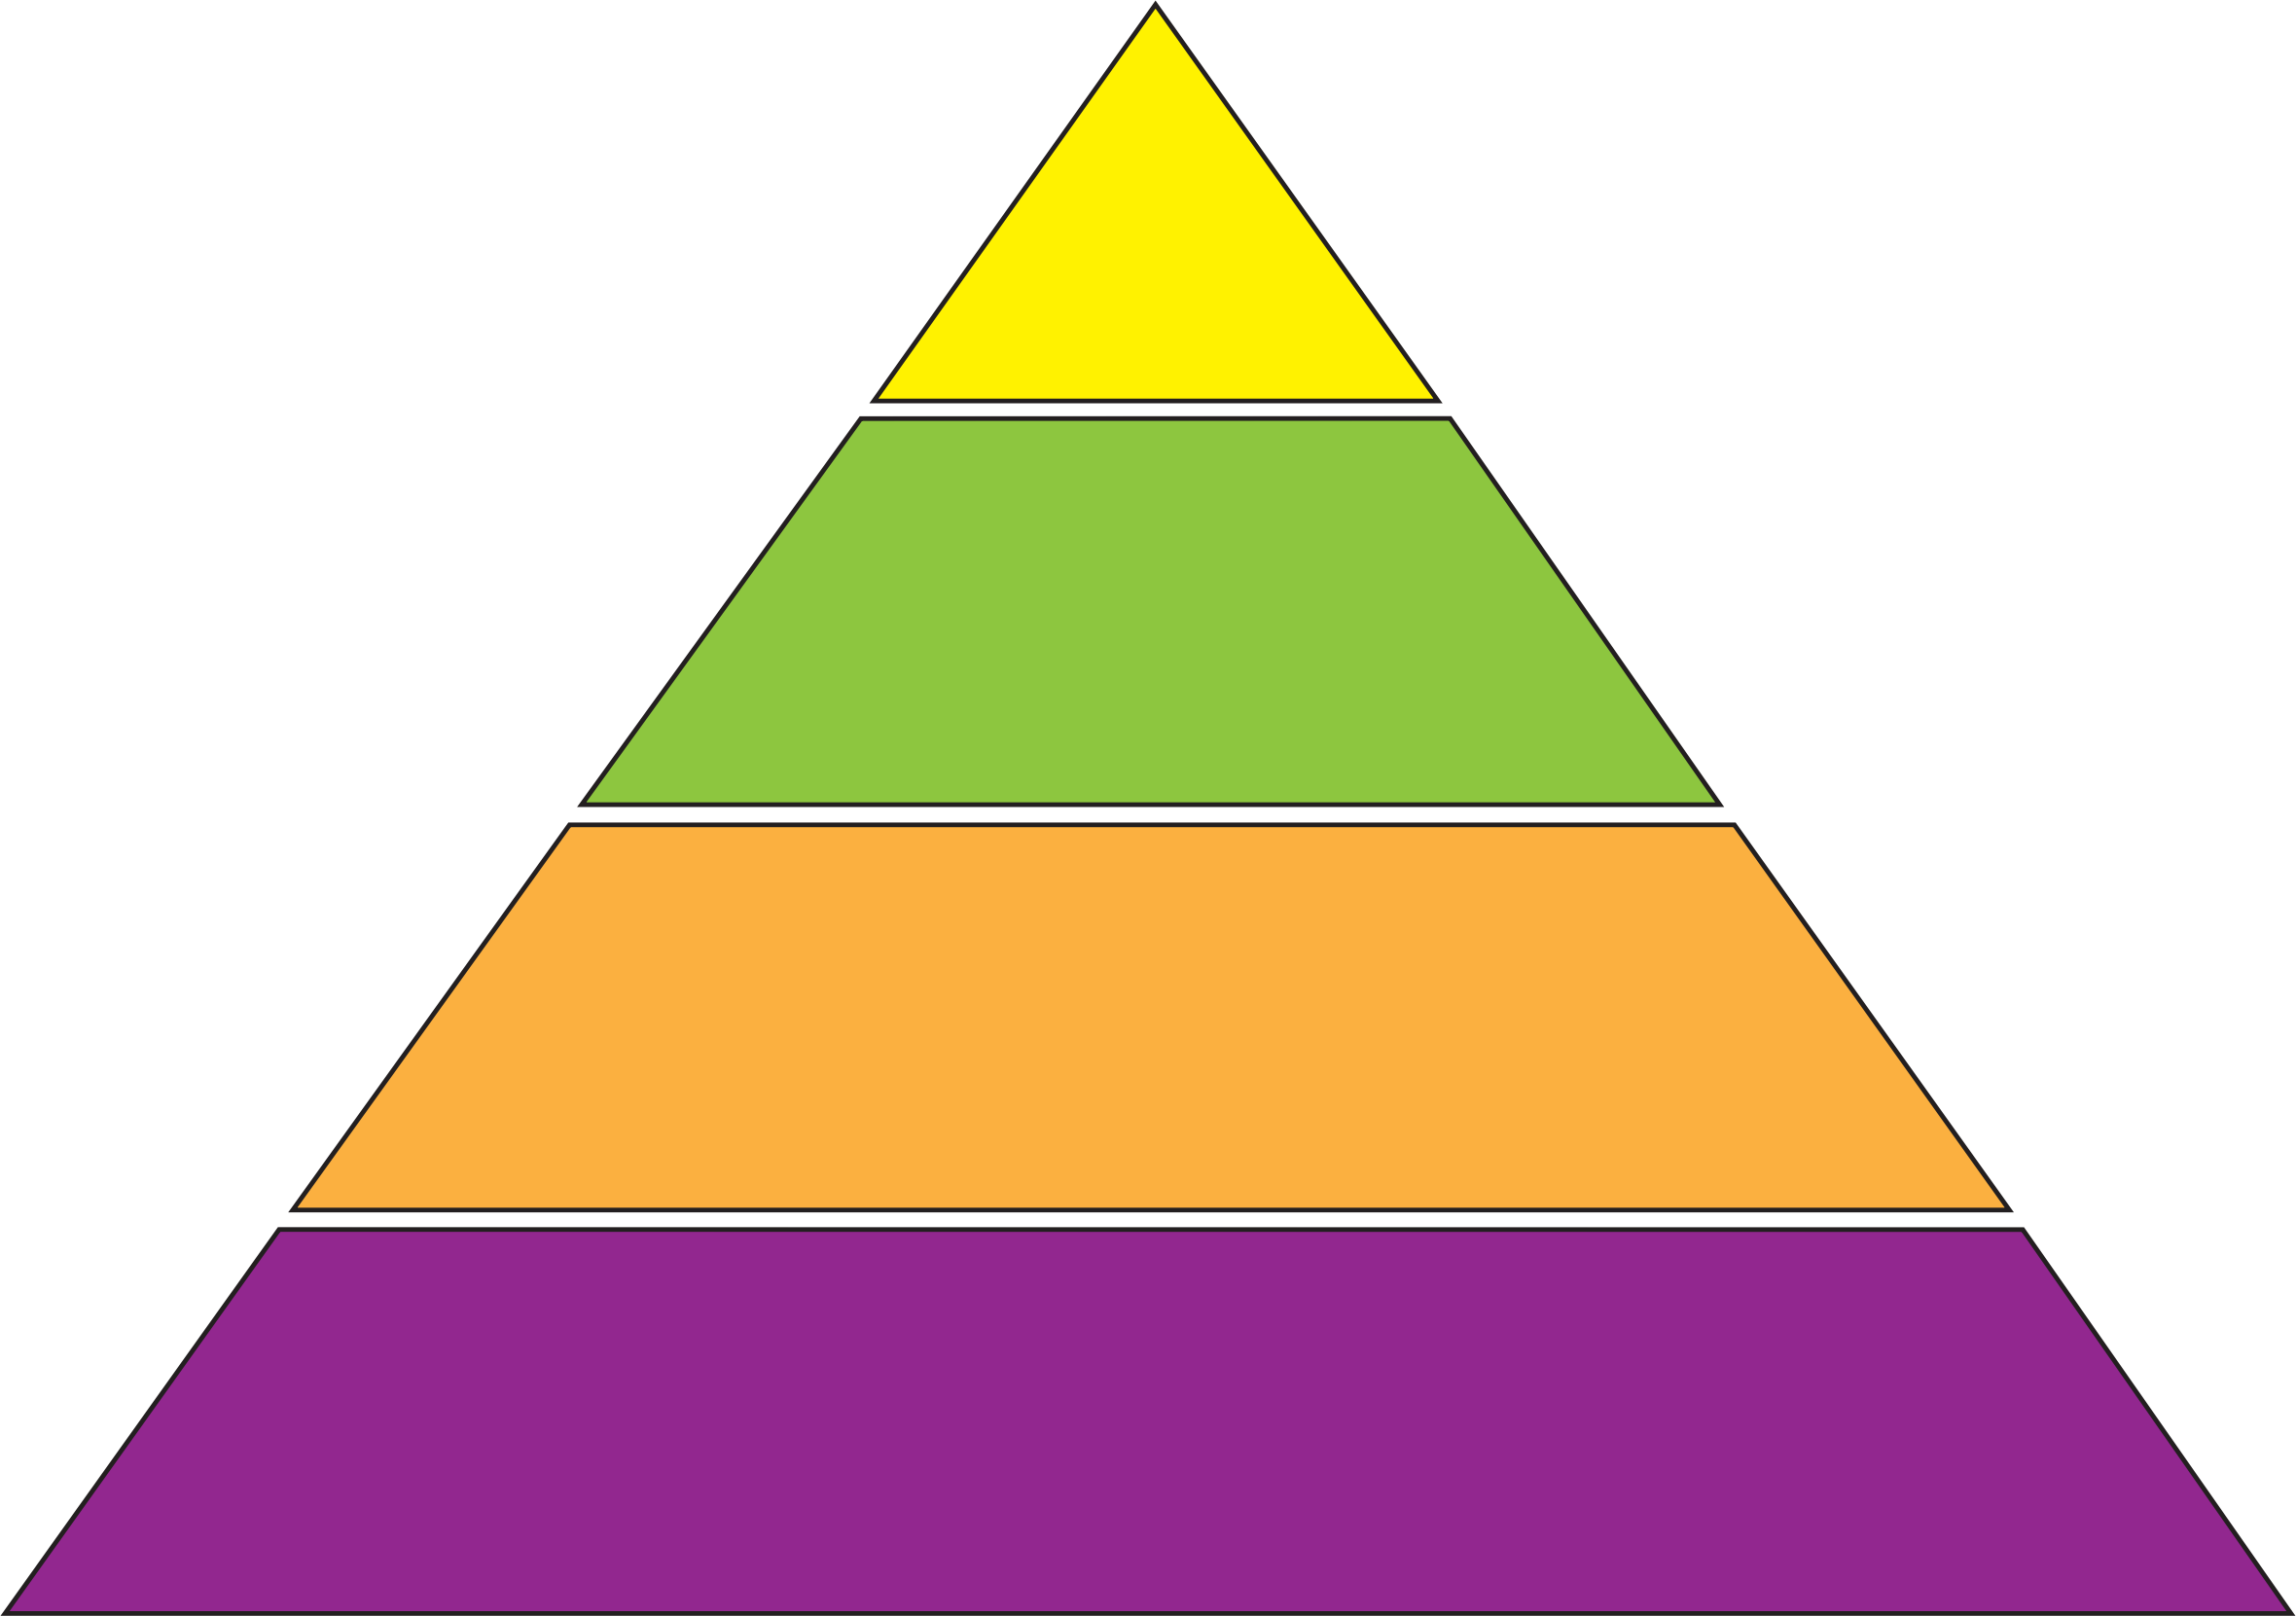 Pyramid cliparts. Pyramid cliparts. Food Pyramid Clip Art